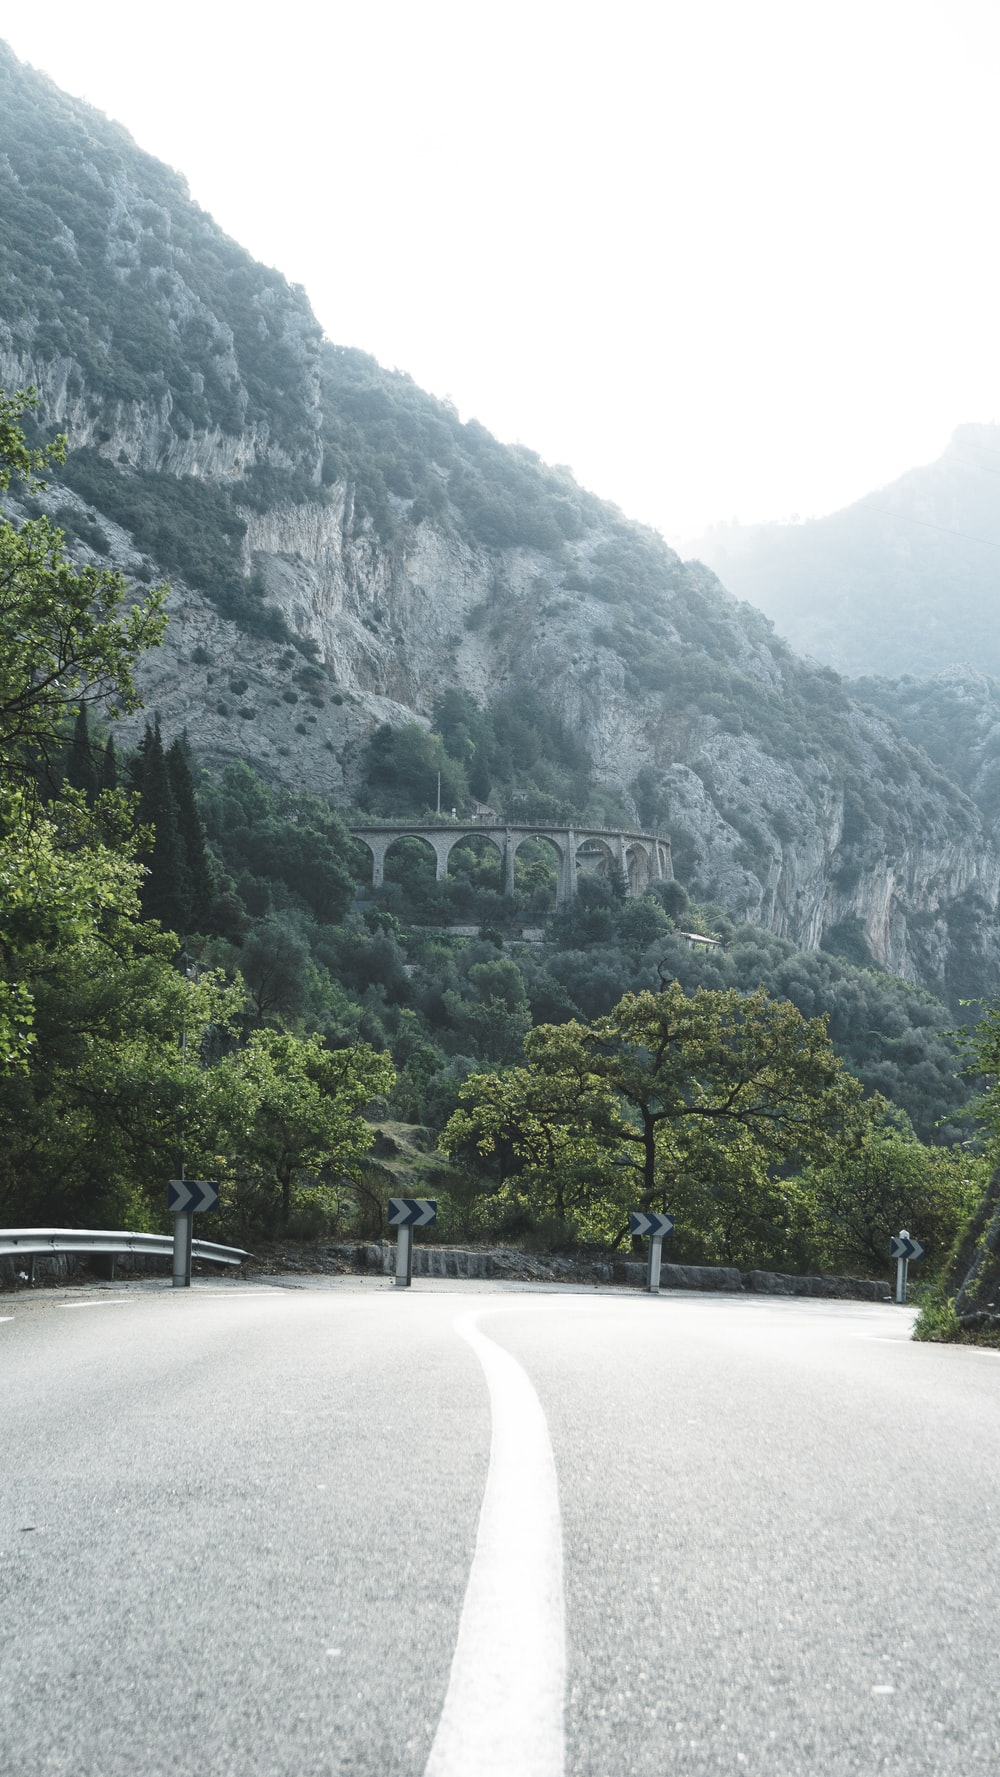 gray concrete road near green trees and mountain during daytime